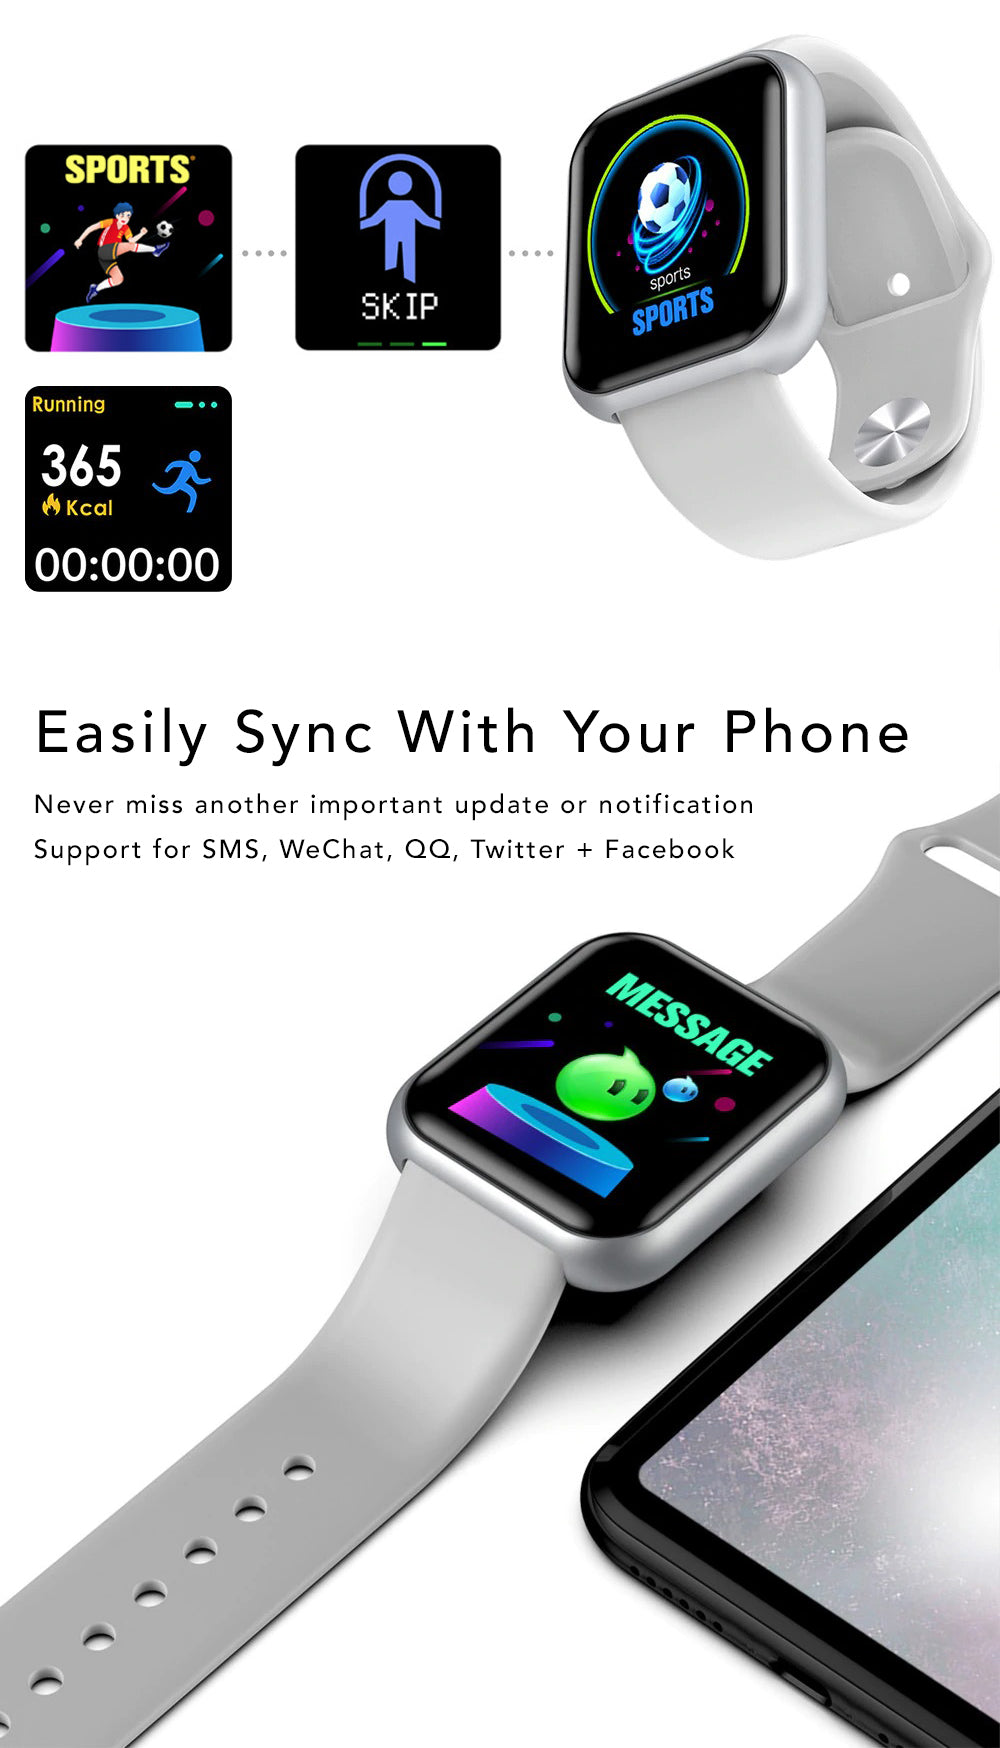 iSport Bluetooth Smart Watch SMS HD Touch Screen Sports Exercise Track Lifestyle Easily Sync Phone Never miss another important notification